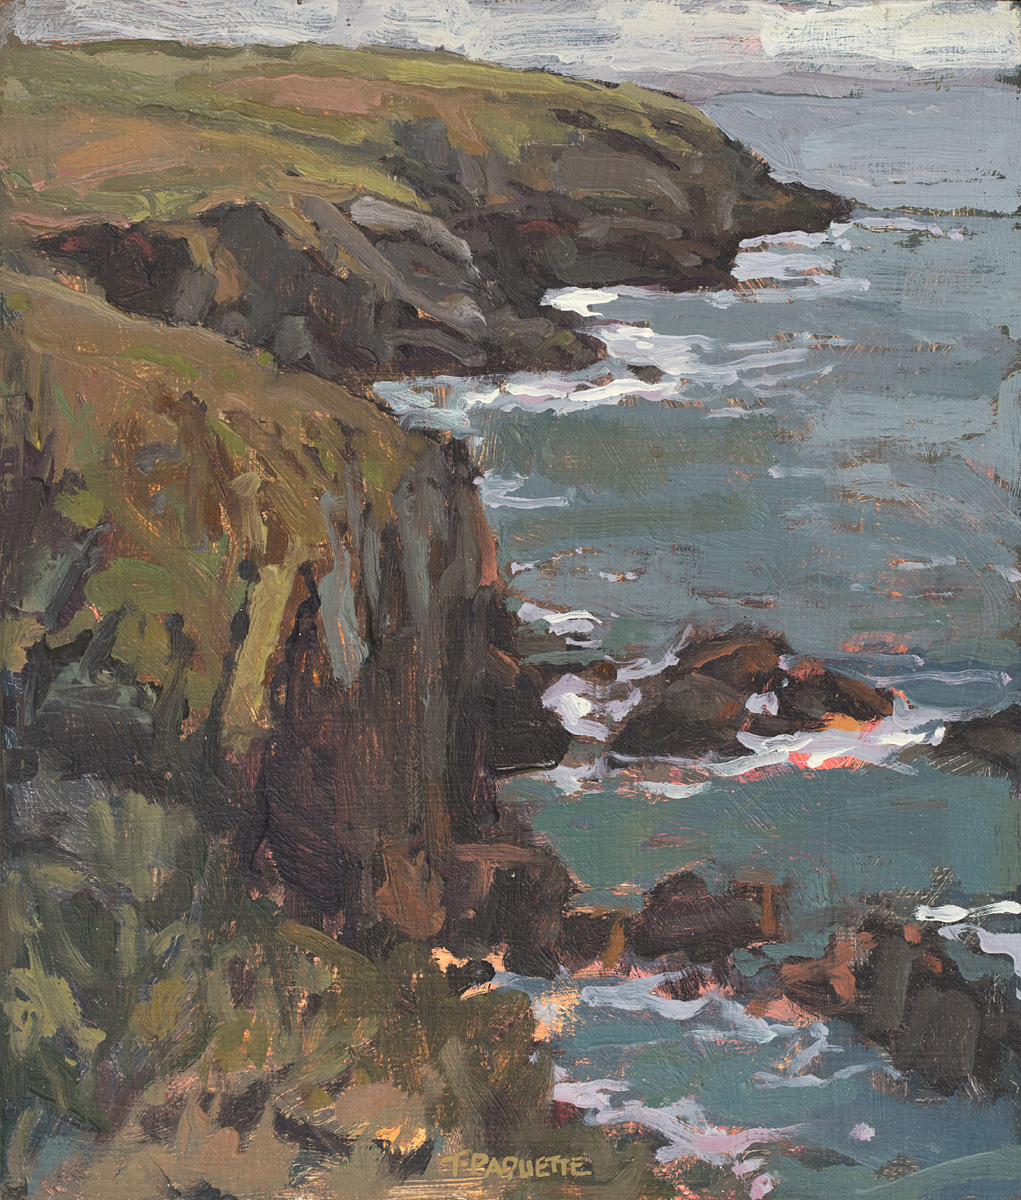 contemporary landscape oil painting of cliff at St Davids, Wales